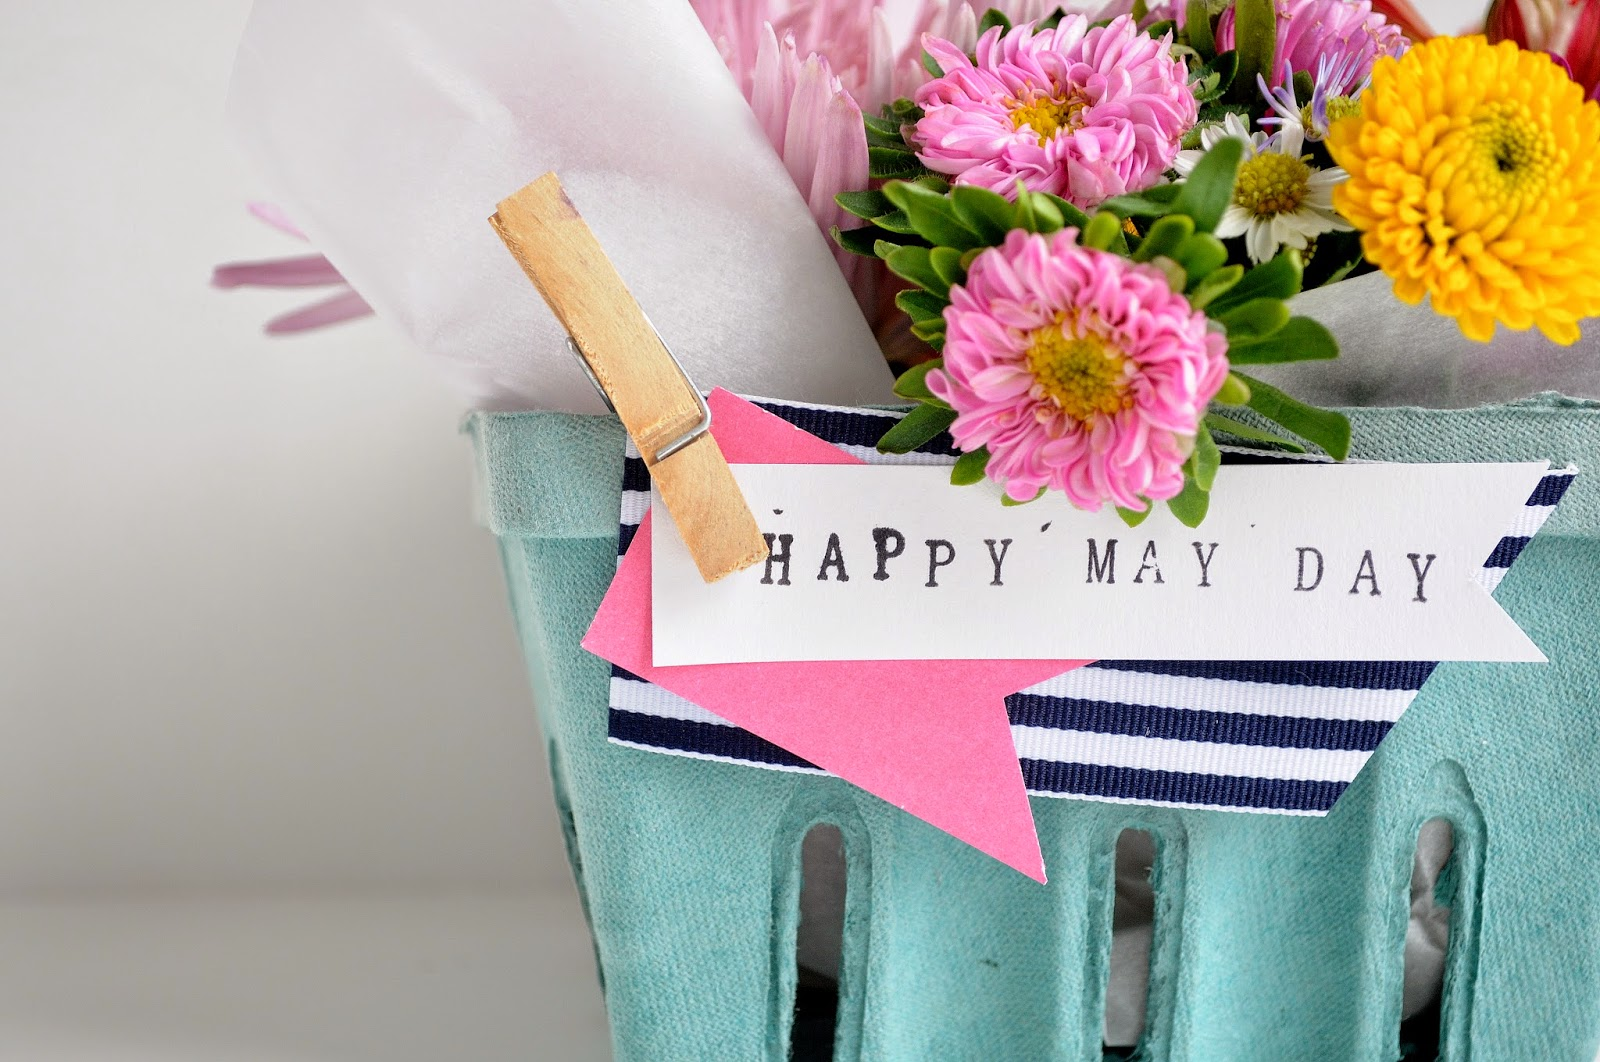 Happy May Day Images Hd